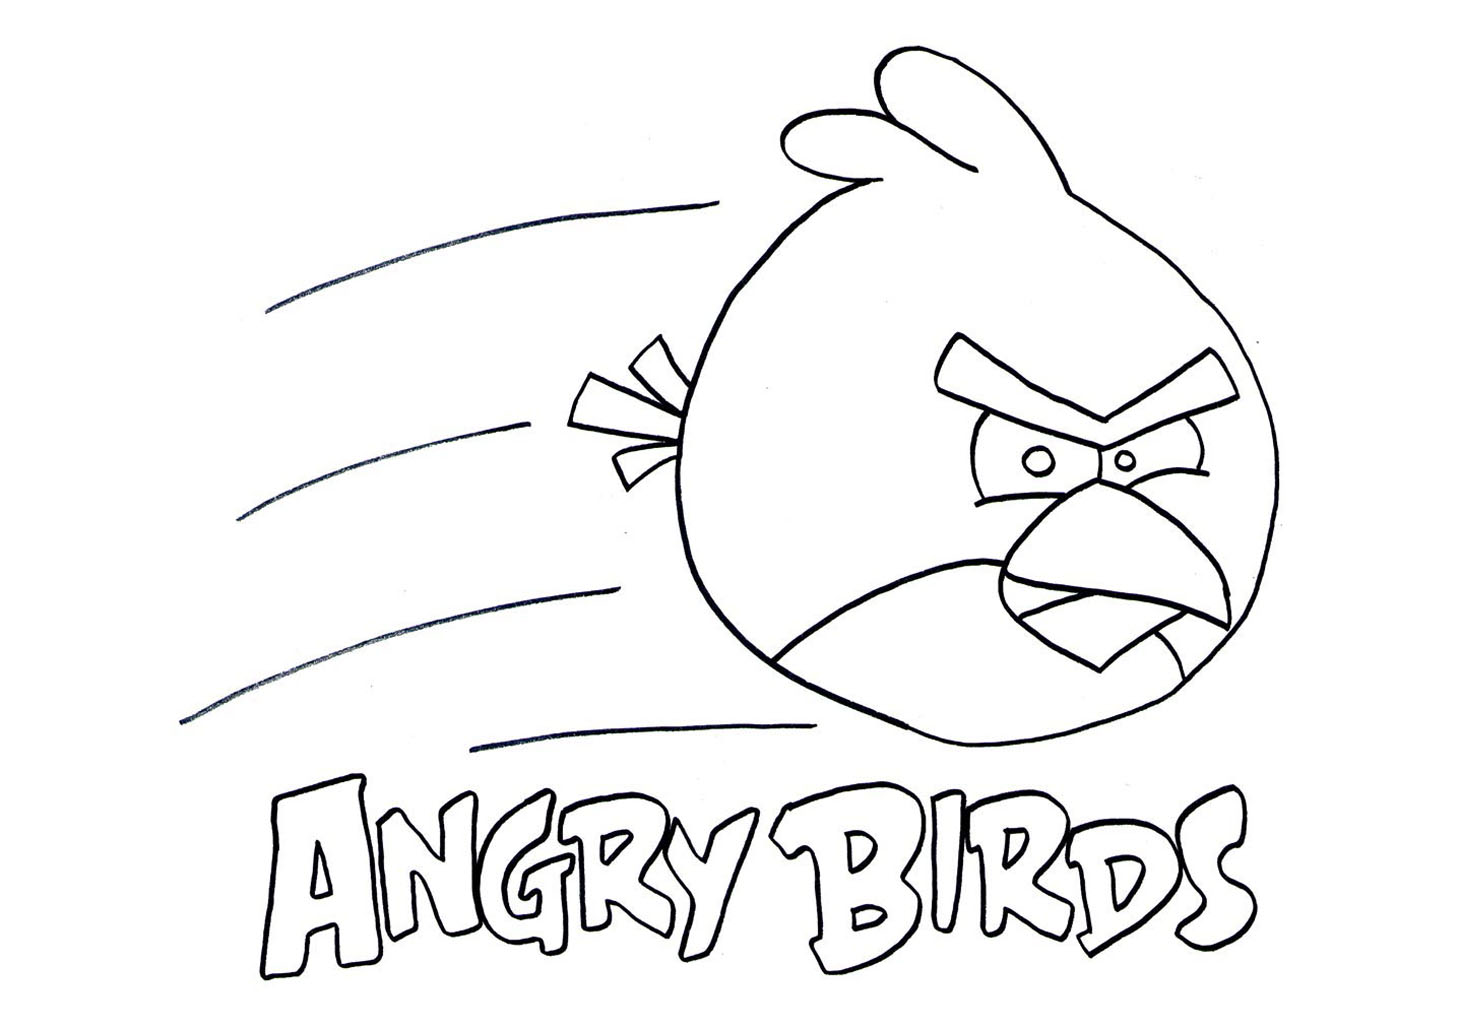 Dessin angry birds imprimer gratuit - Dessin a colorier angry bird ...